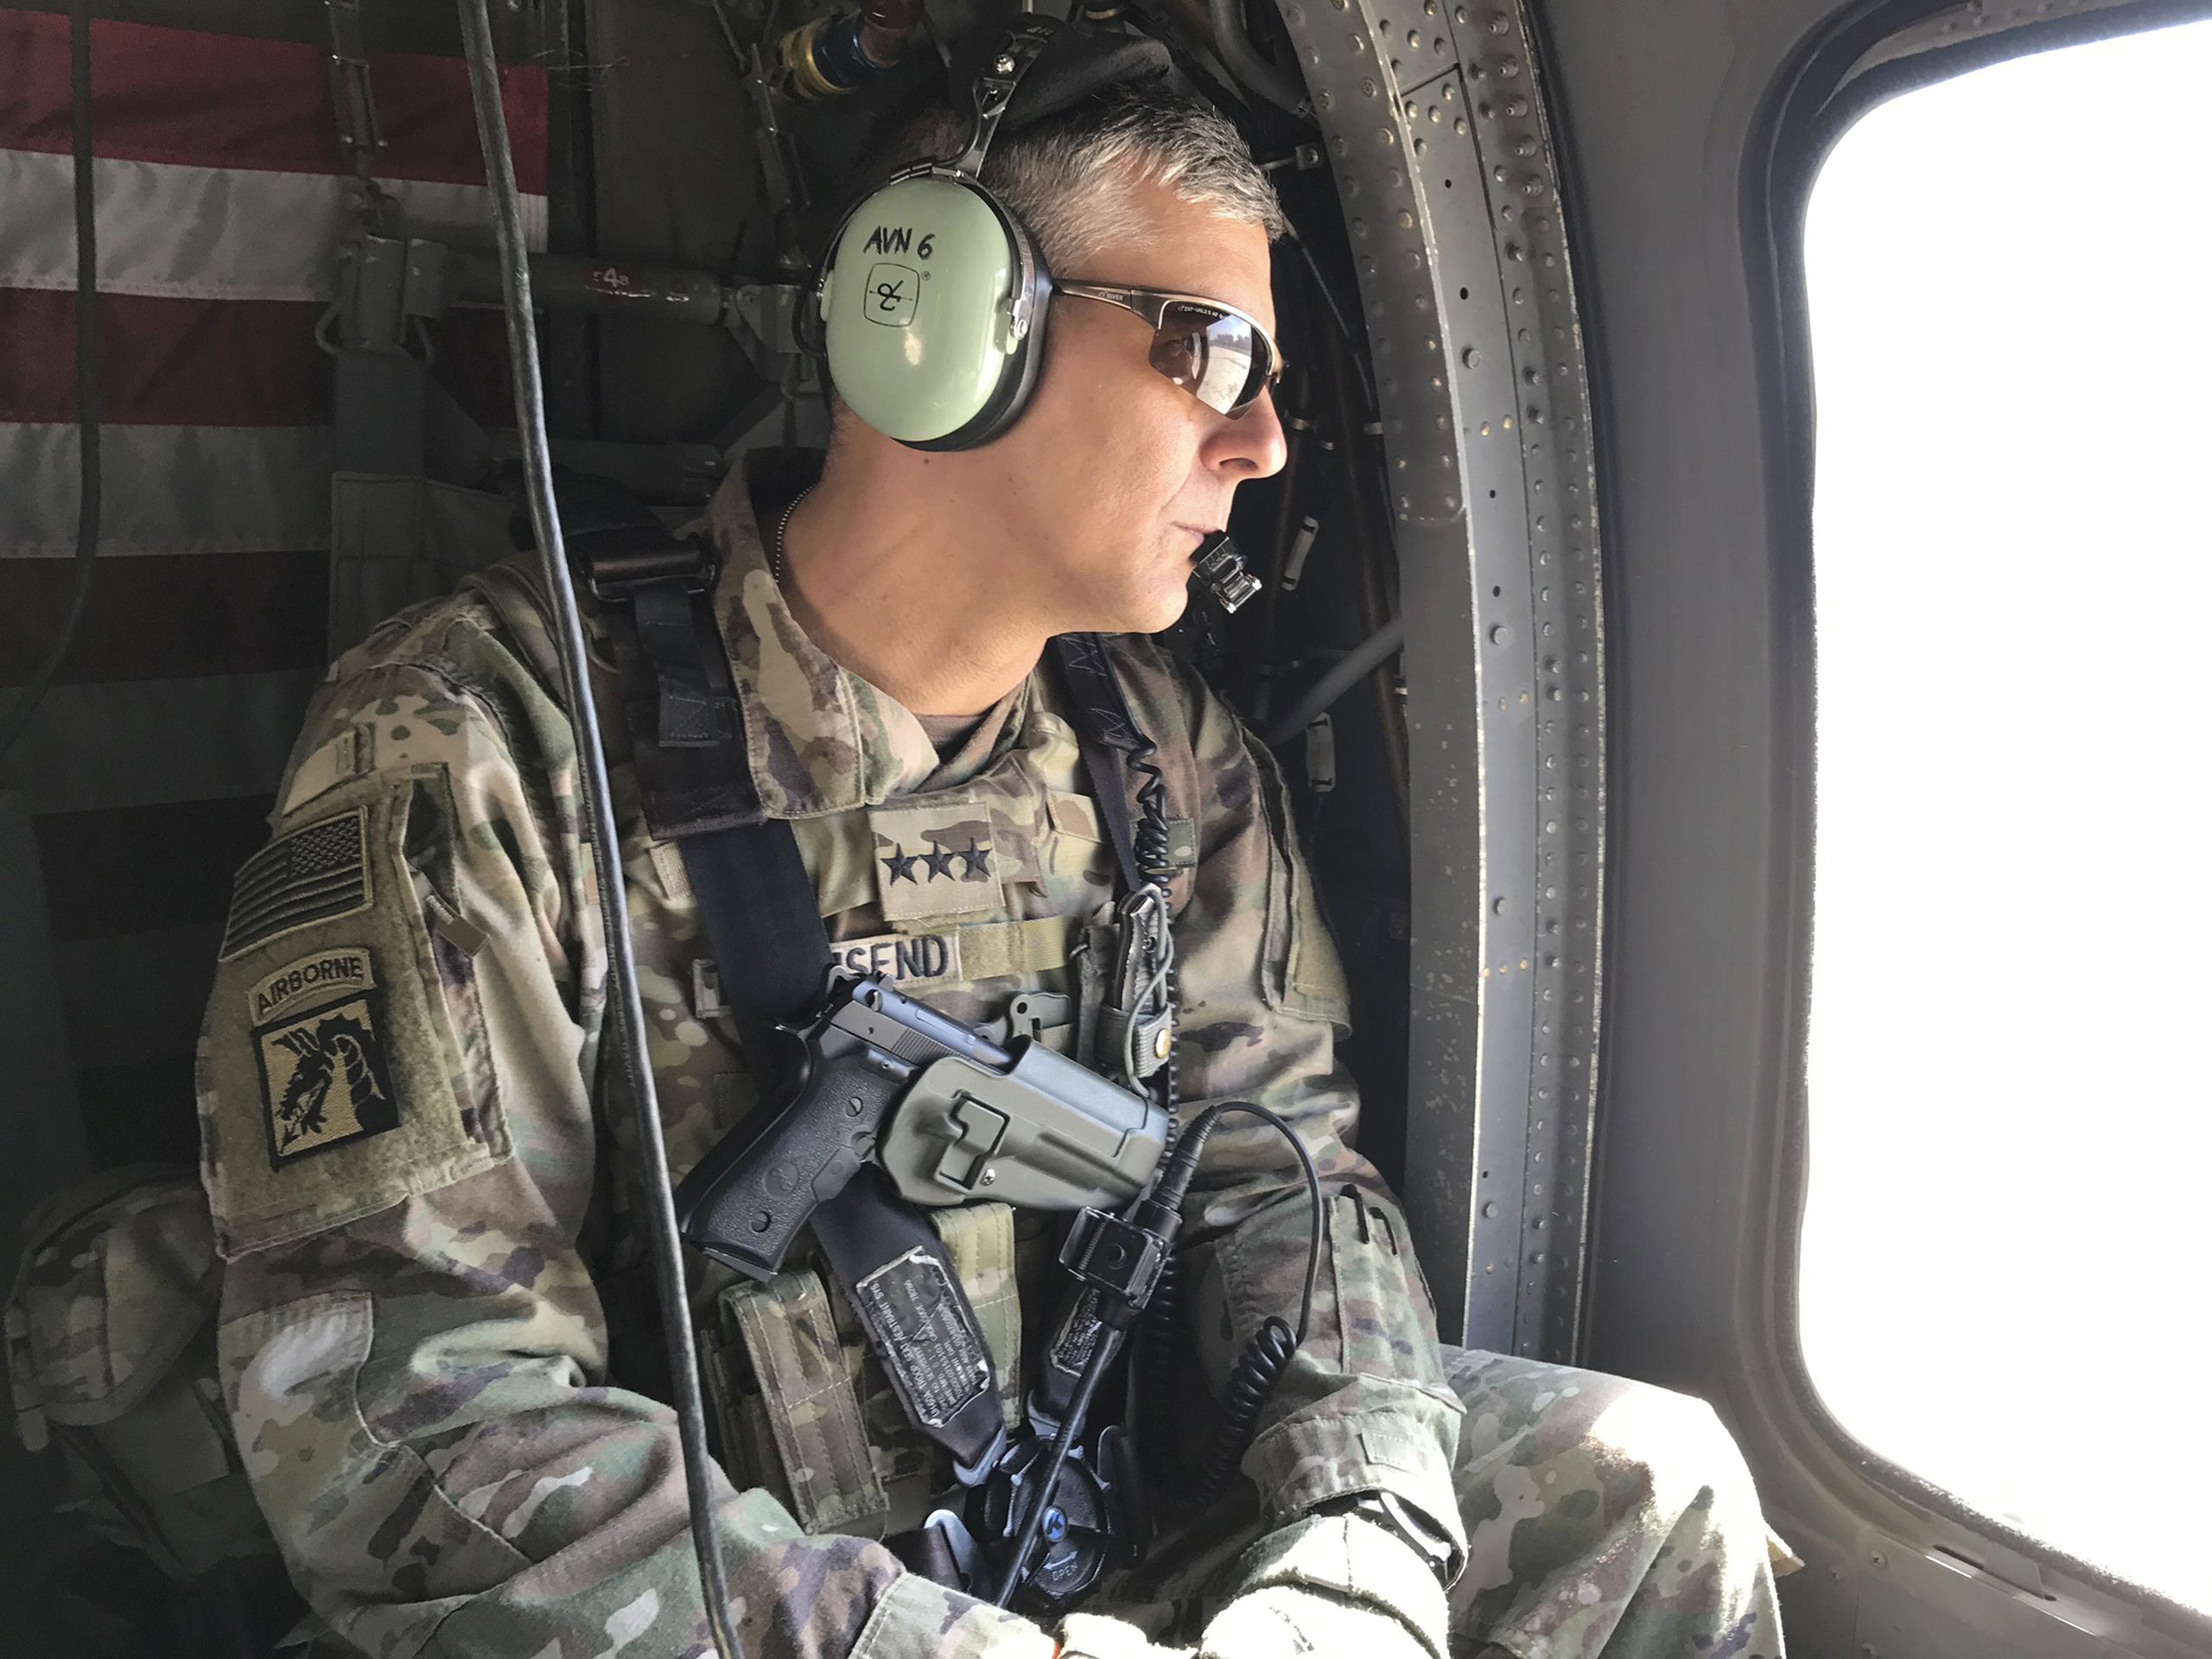 U.S. Army Lt. Gen. Stephen Townsend during a tour north of Baghdad, Iraq, on Feb. 8, 2017.